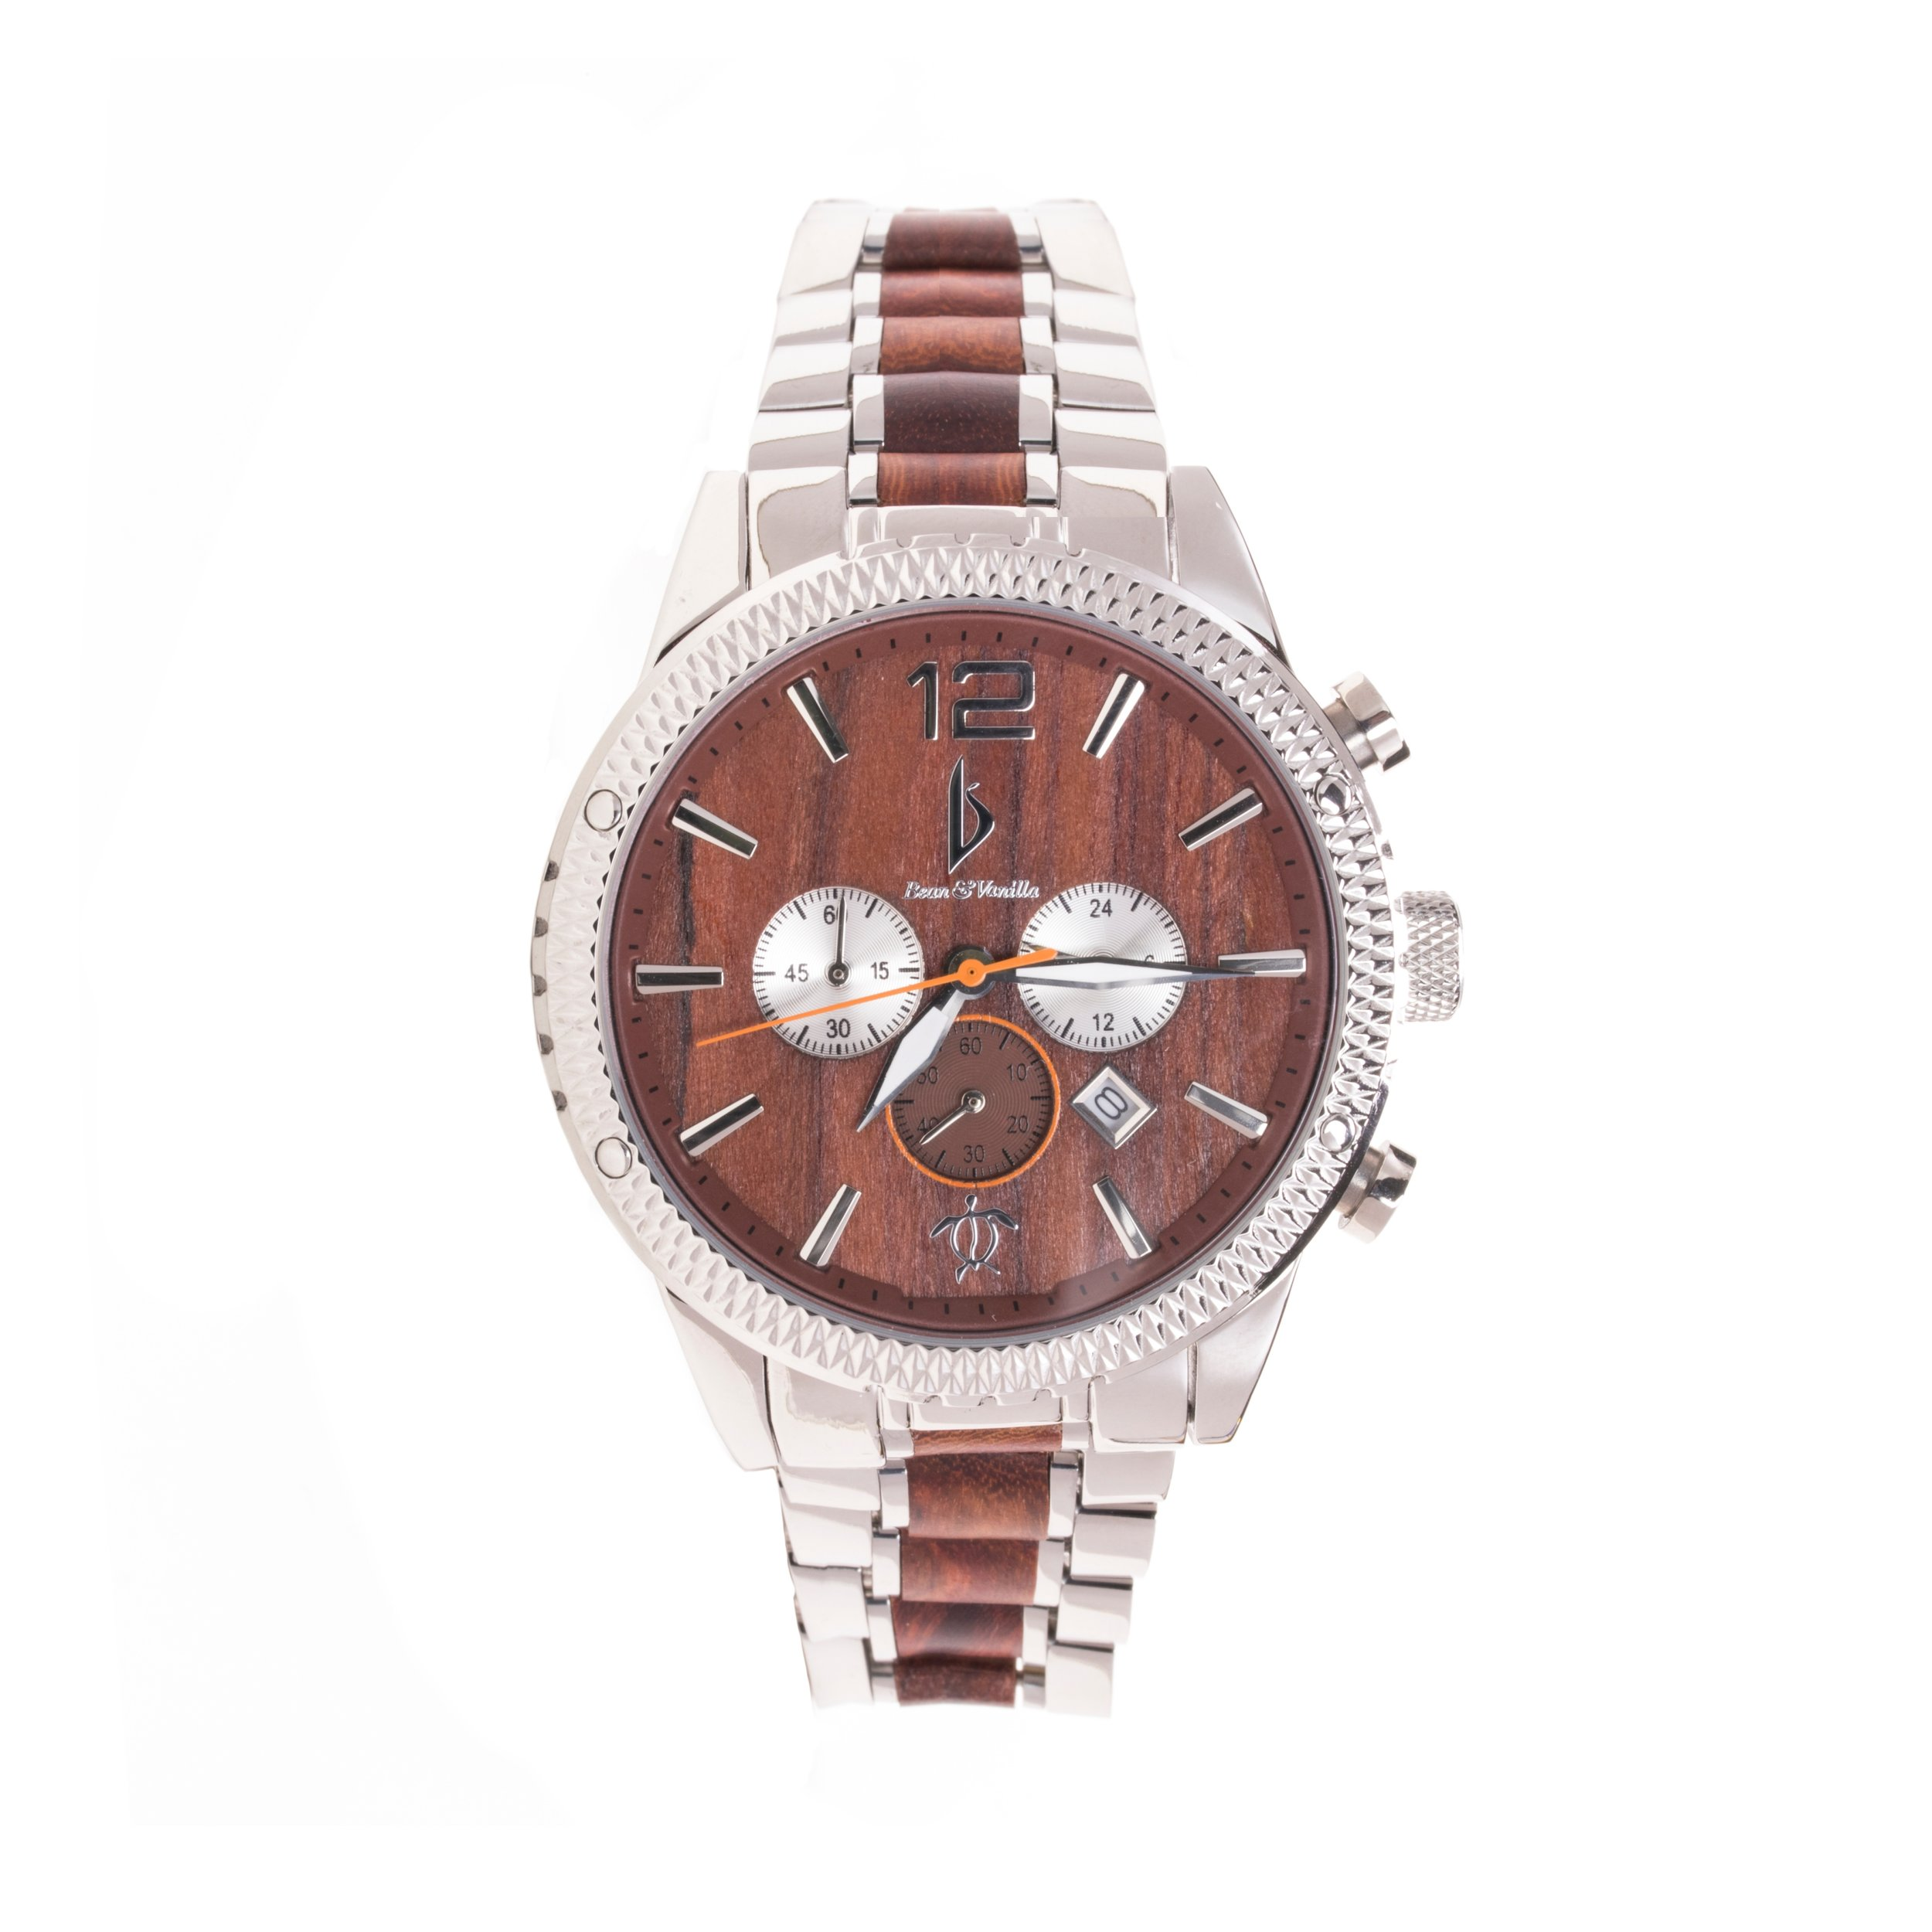 Chronograph stainless steel and sandalwood